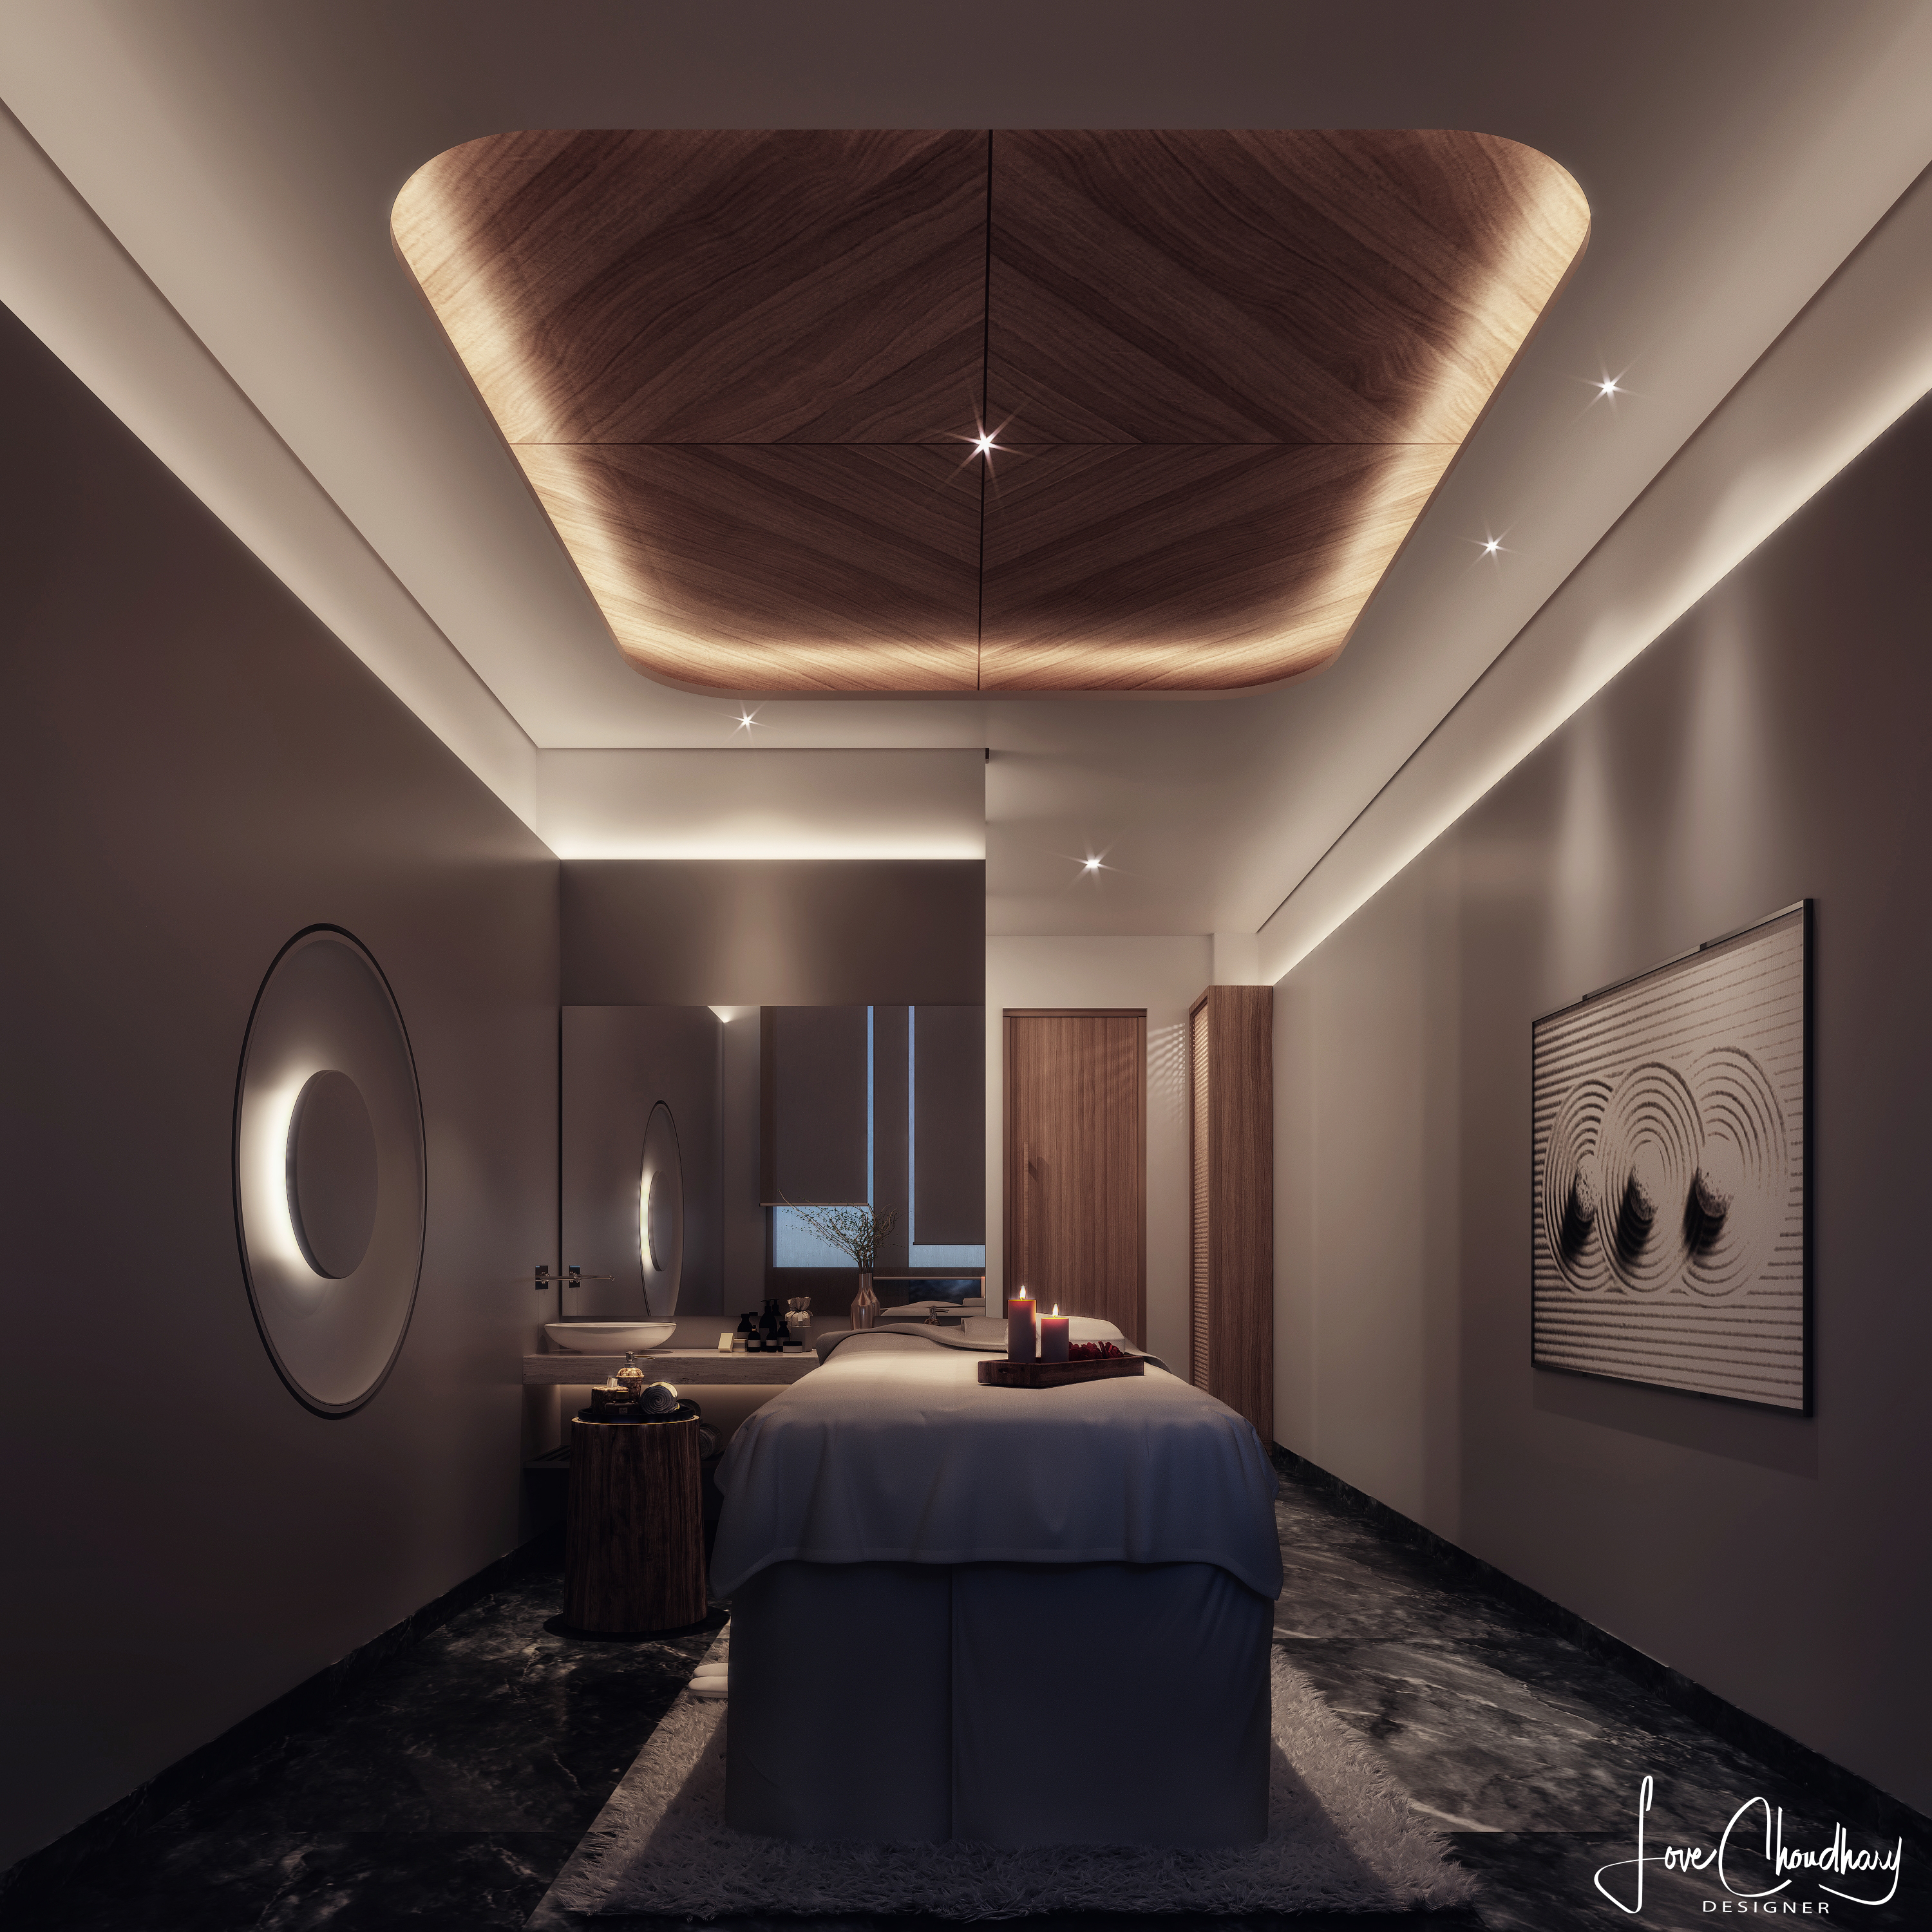 Single Treatment Room View 3_Revised